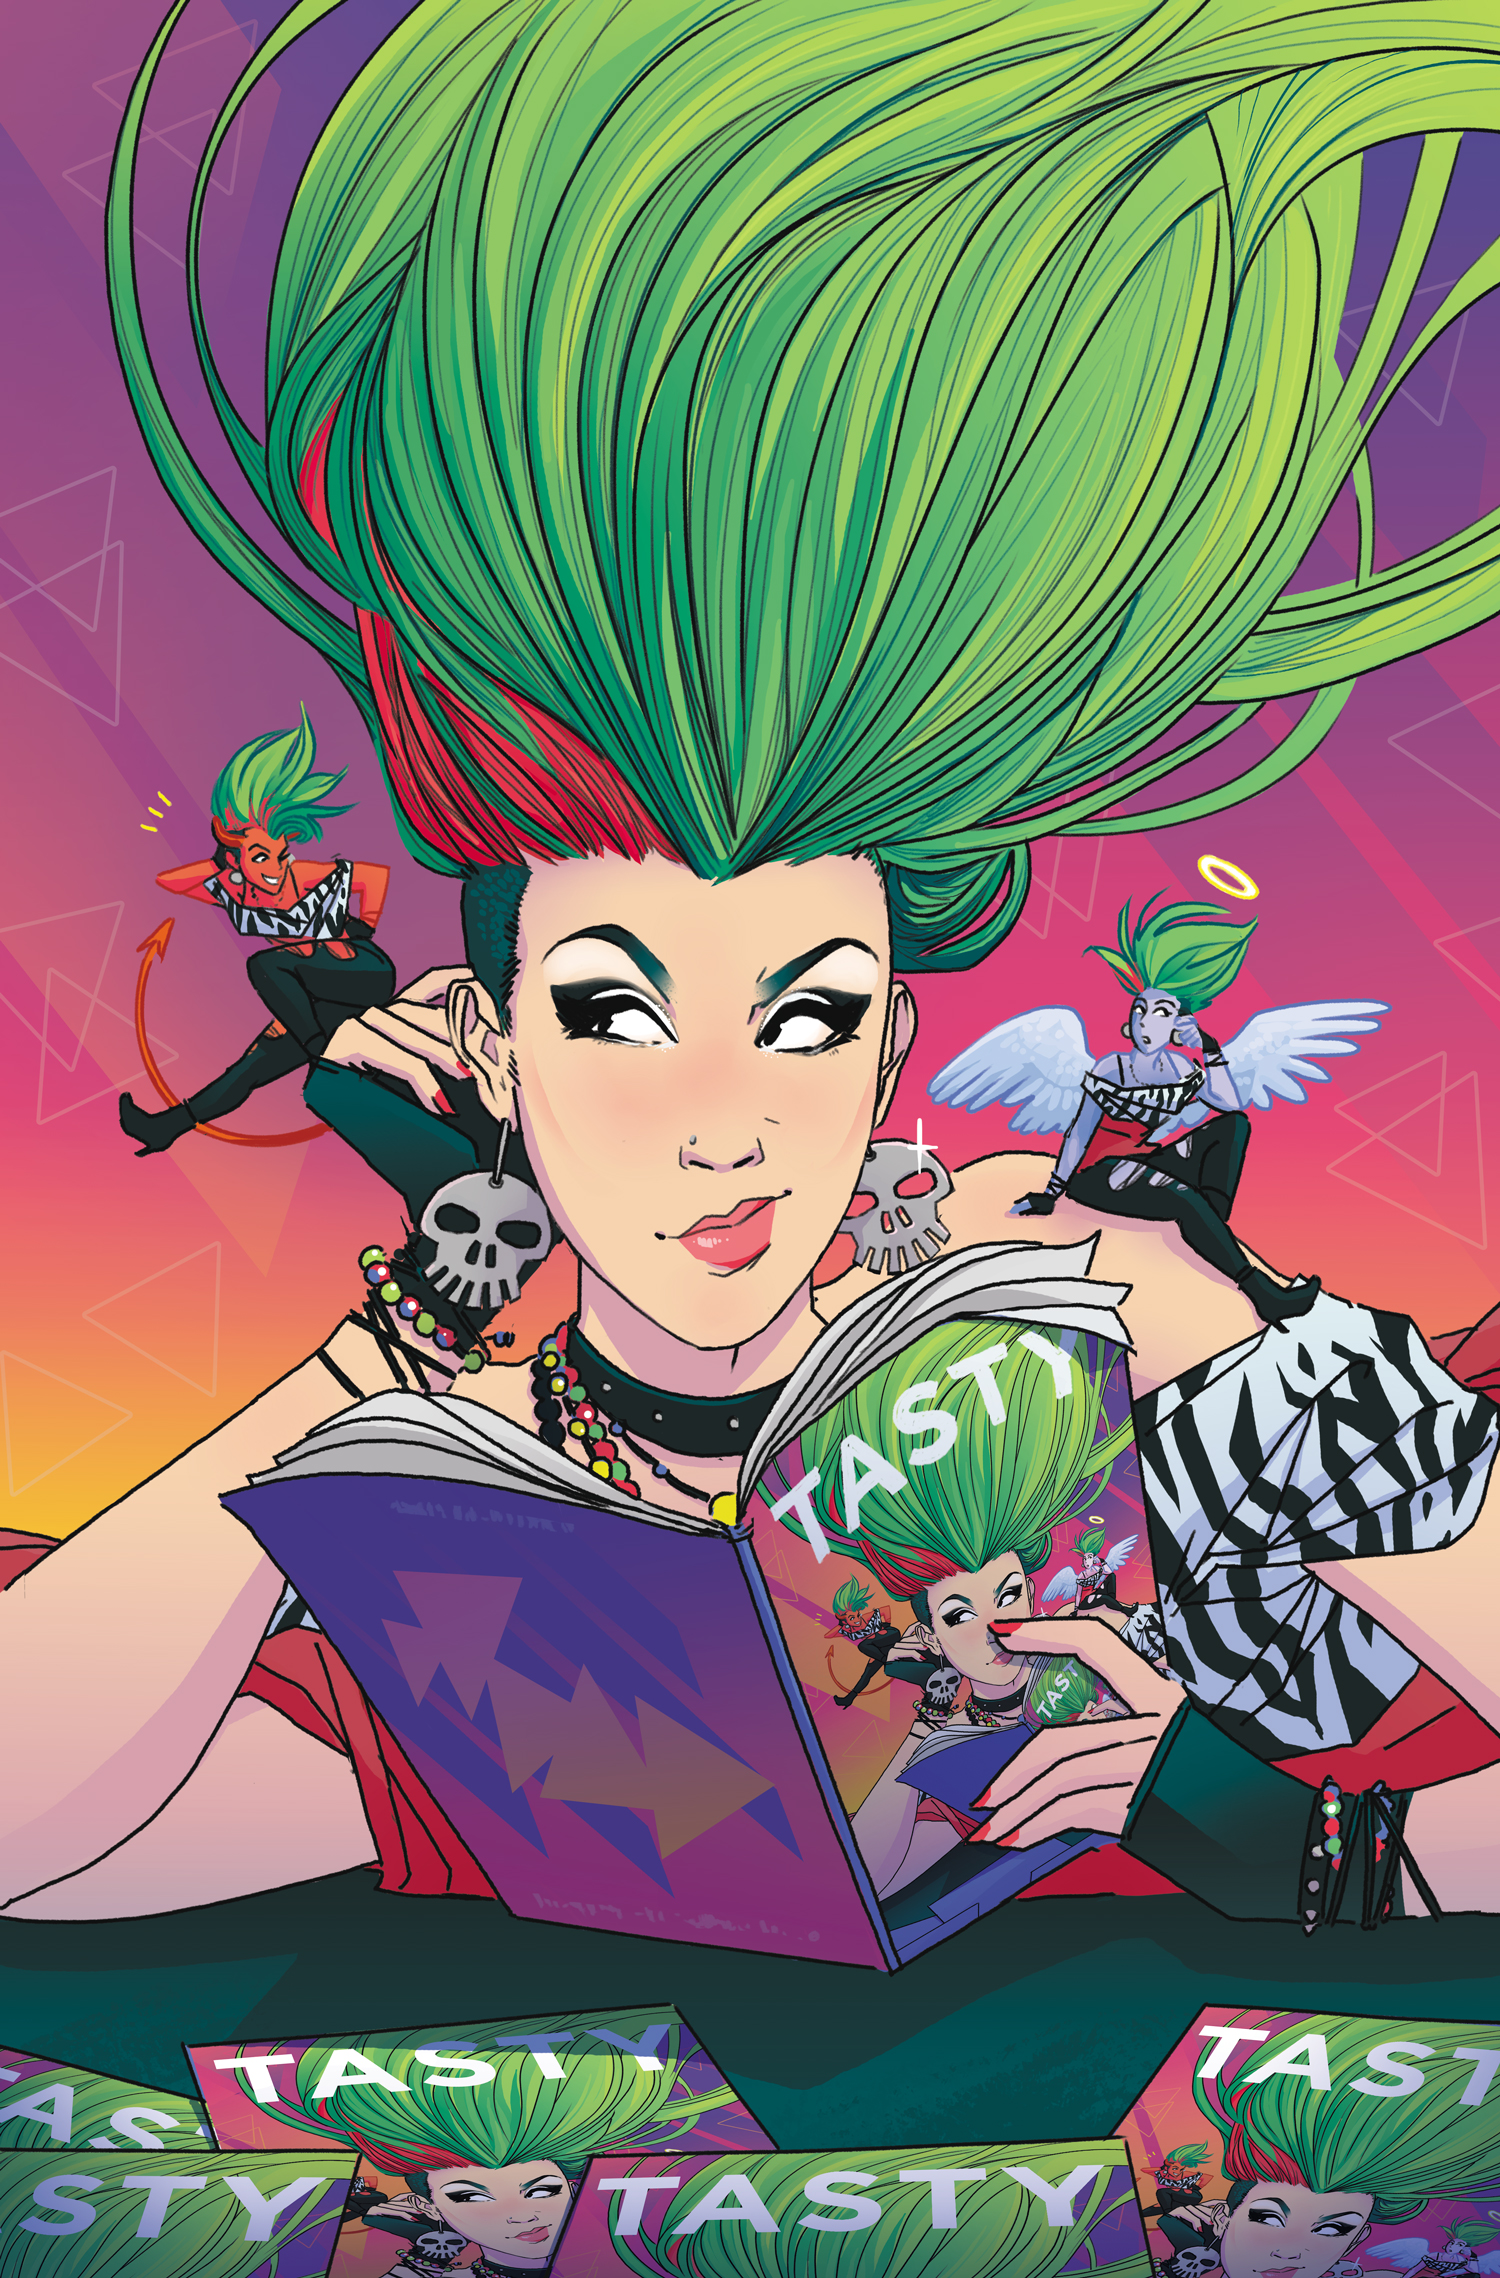 Cover  - Jem & The Holograms: DIMENSIONS #4  - IDW